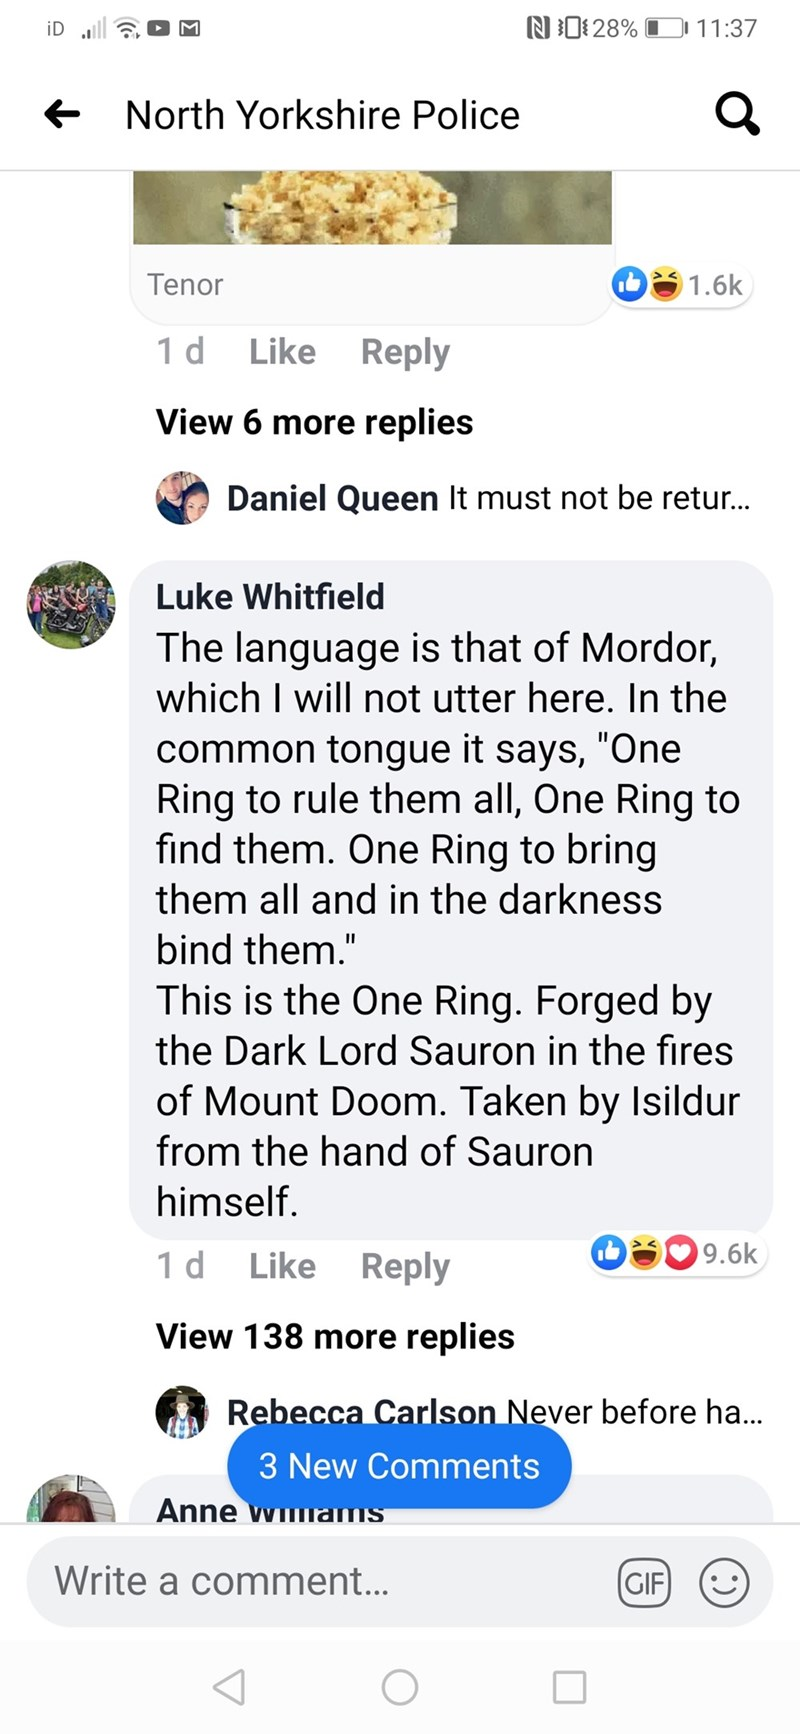 """Text - N0 28% 11:37 iD l e North Yorkshire Police Tenor 1.6k Like Reply 1 d View 6 more replies Daniel Queen It must not be retur. Luke Whitfield The language is that of Mordor, which I will not utter here. In the common tongue it says, """"One Ring to rule them all, One Ring to fınd them. One Ring to bring them all and in the darkness bind them."""" This is the One Ring. Forged by the Dark Lord Sauron in the fires of Mount Doom. Taken by Isildur from the hand of Sauron himself. 9.6k Like Reply 1 d Vi"""